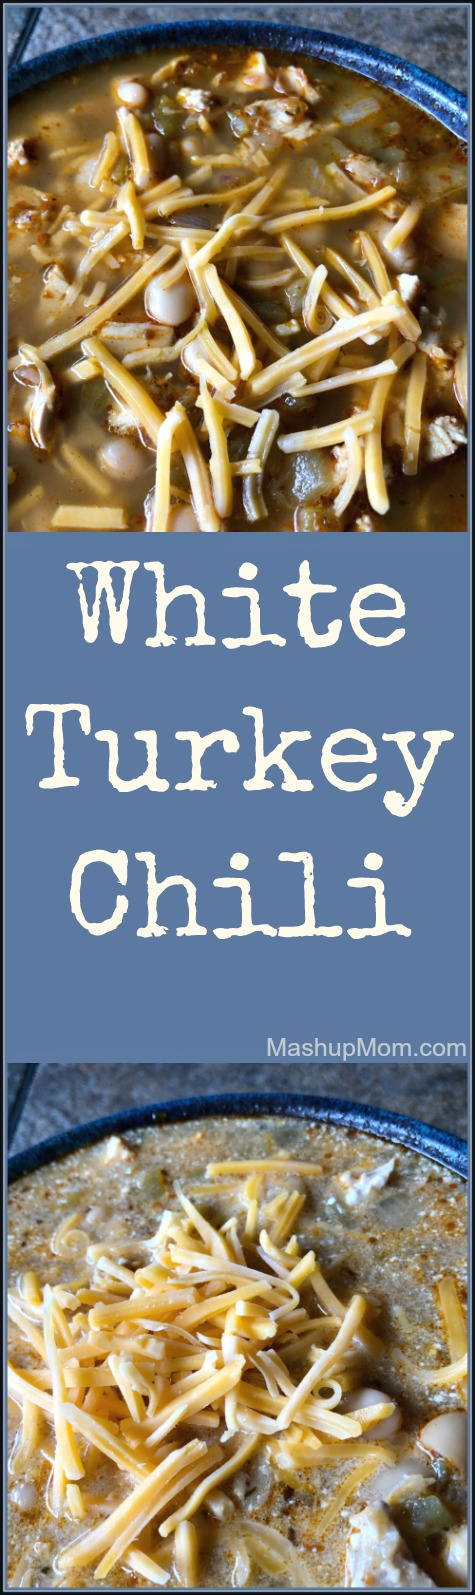 white turkey chili is an easy post-Thanksgiving recipe for leftover turkey